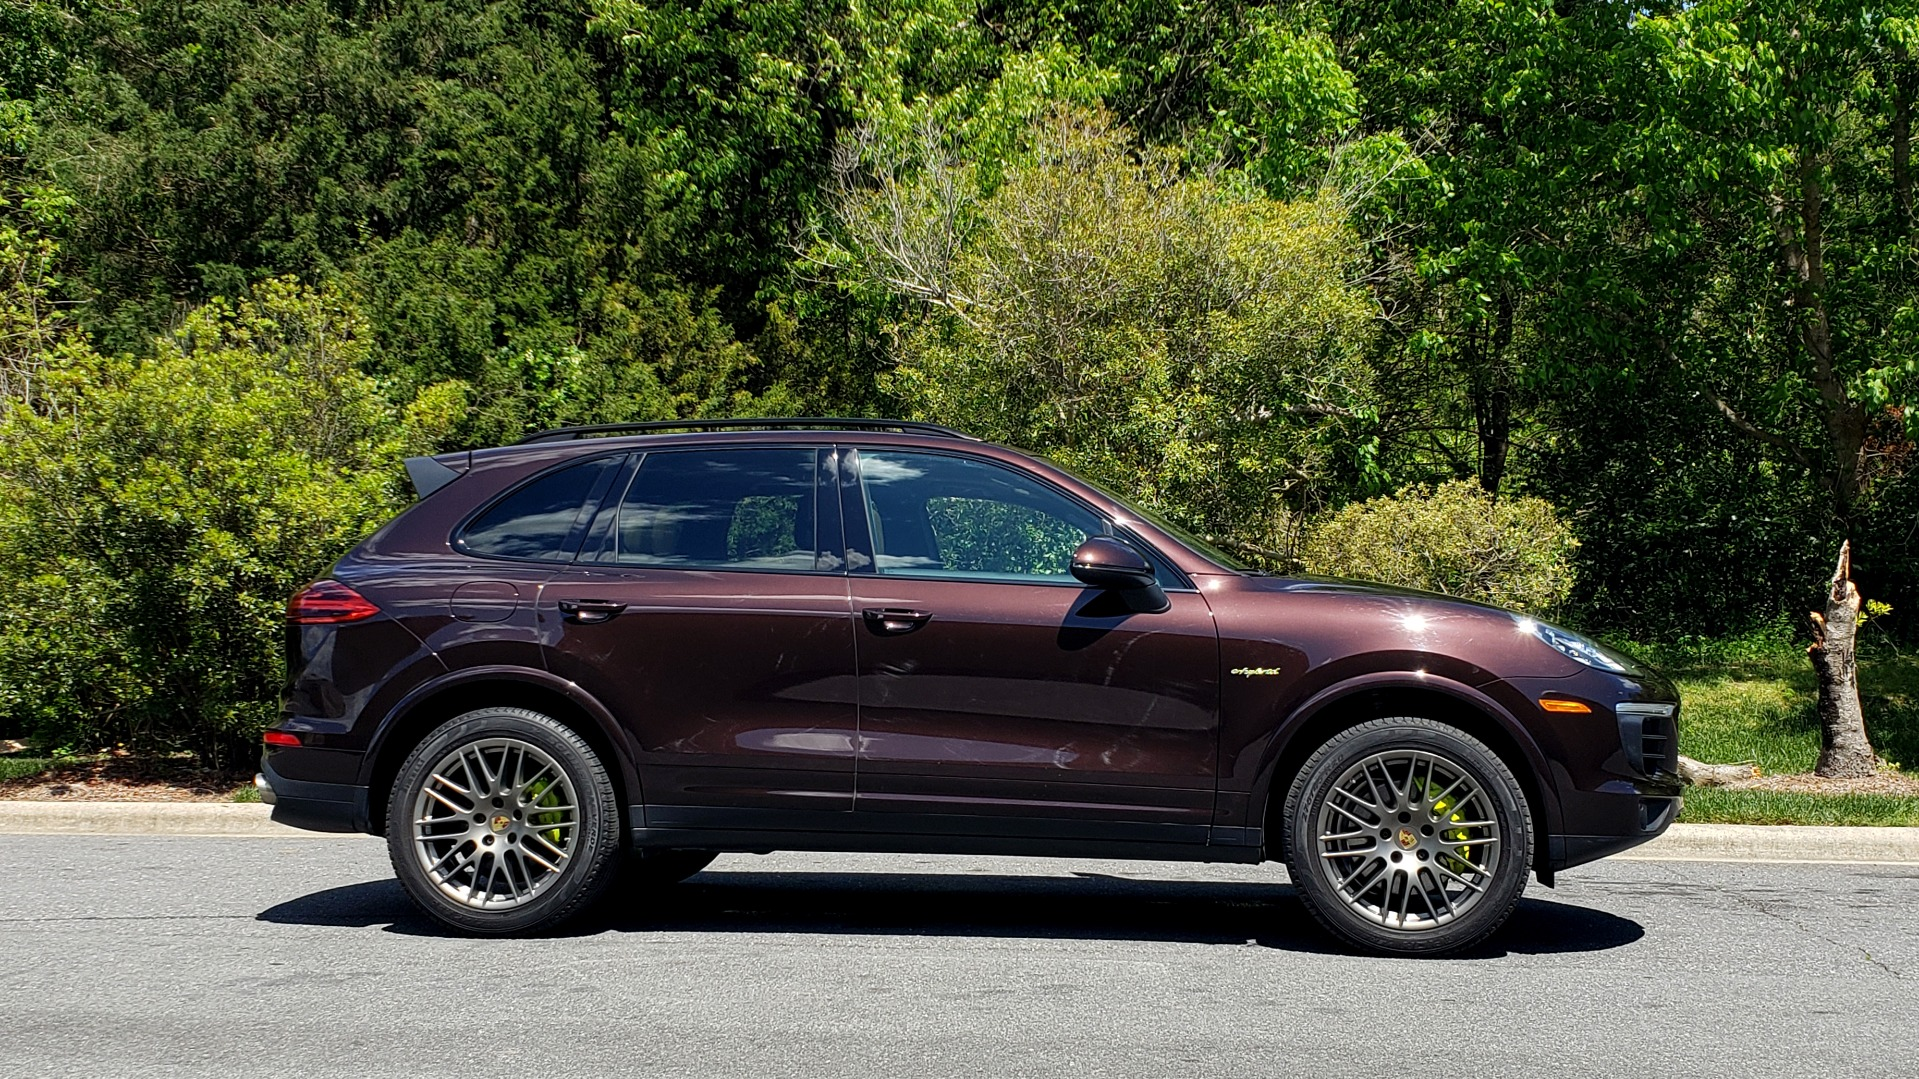 Used 2017 Porsche CAYENNE S E-HYBRID PLATINUM EDITION for sale Sold at Formula Imports in Charlotte NC 28227 5